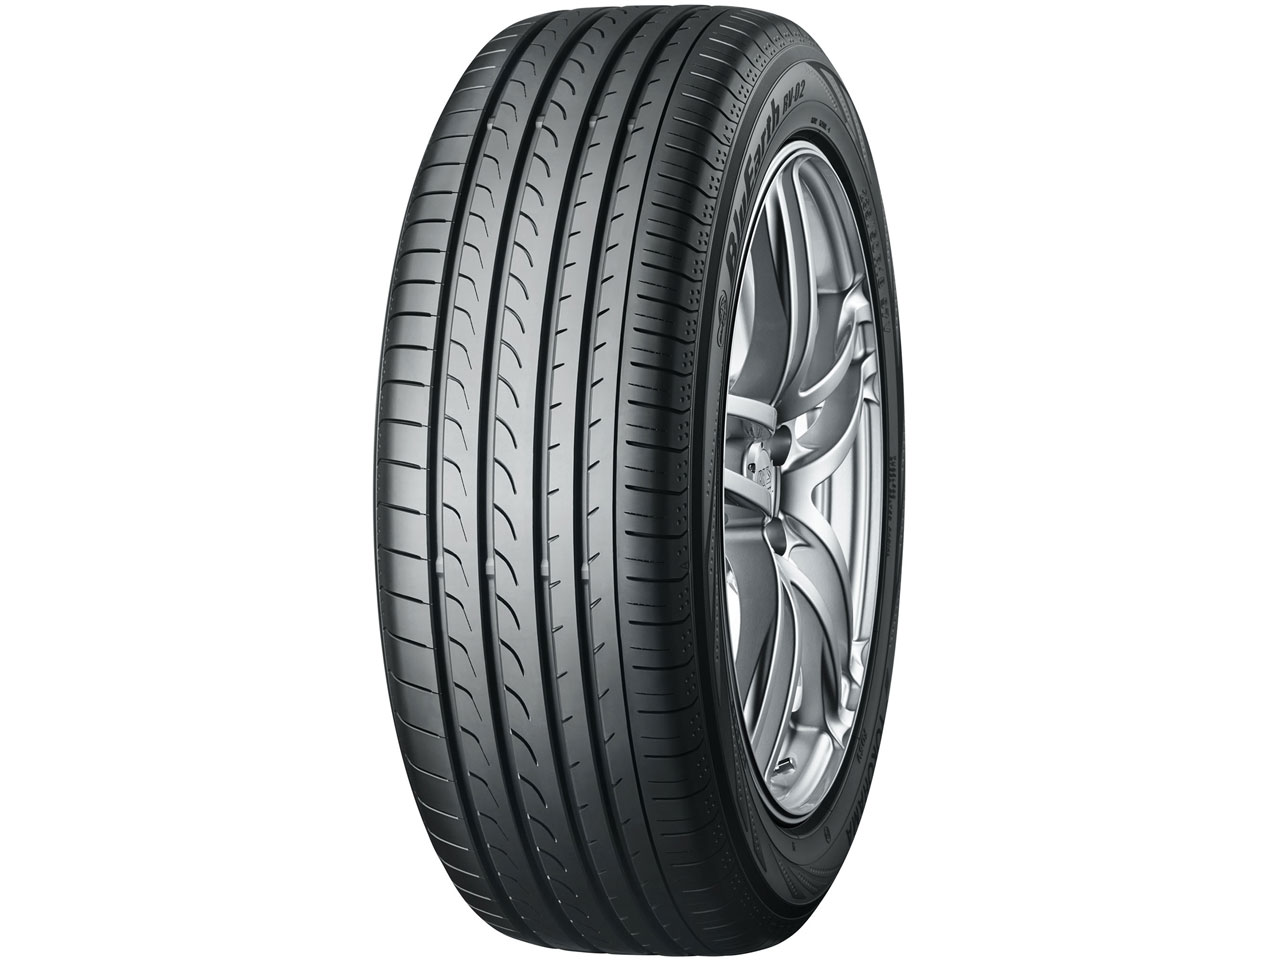 BluEarth RV-02 195/65R15 91H の製品画像